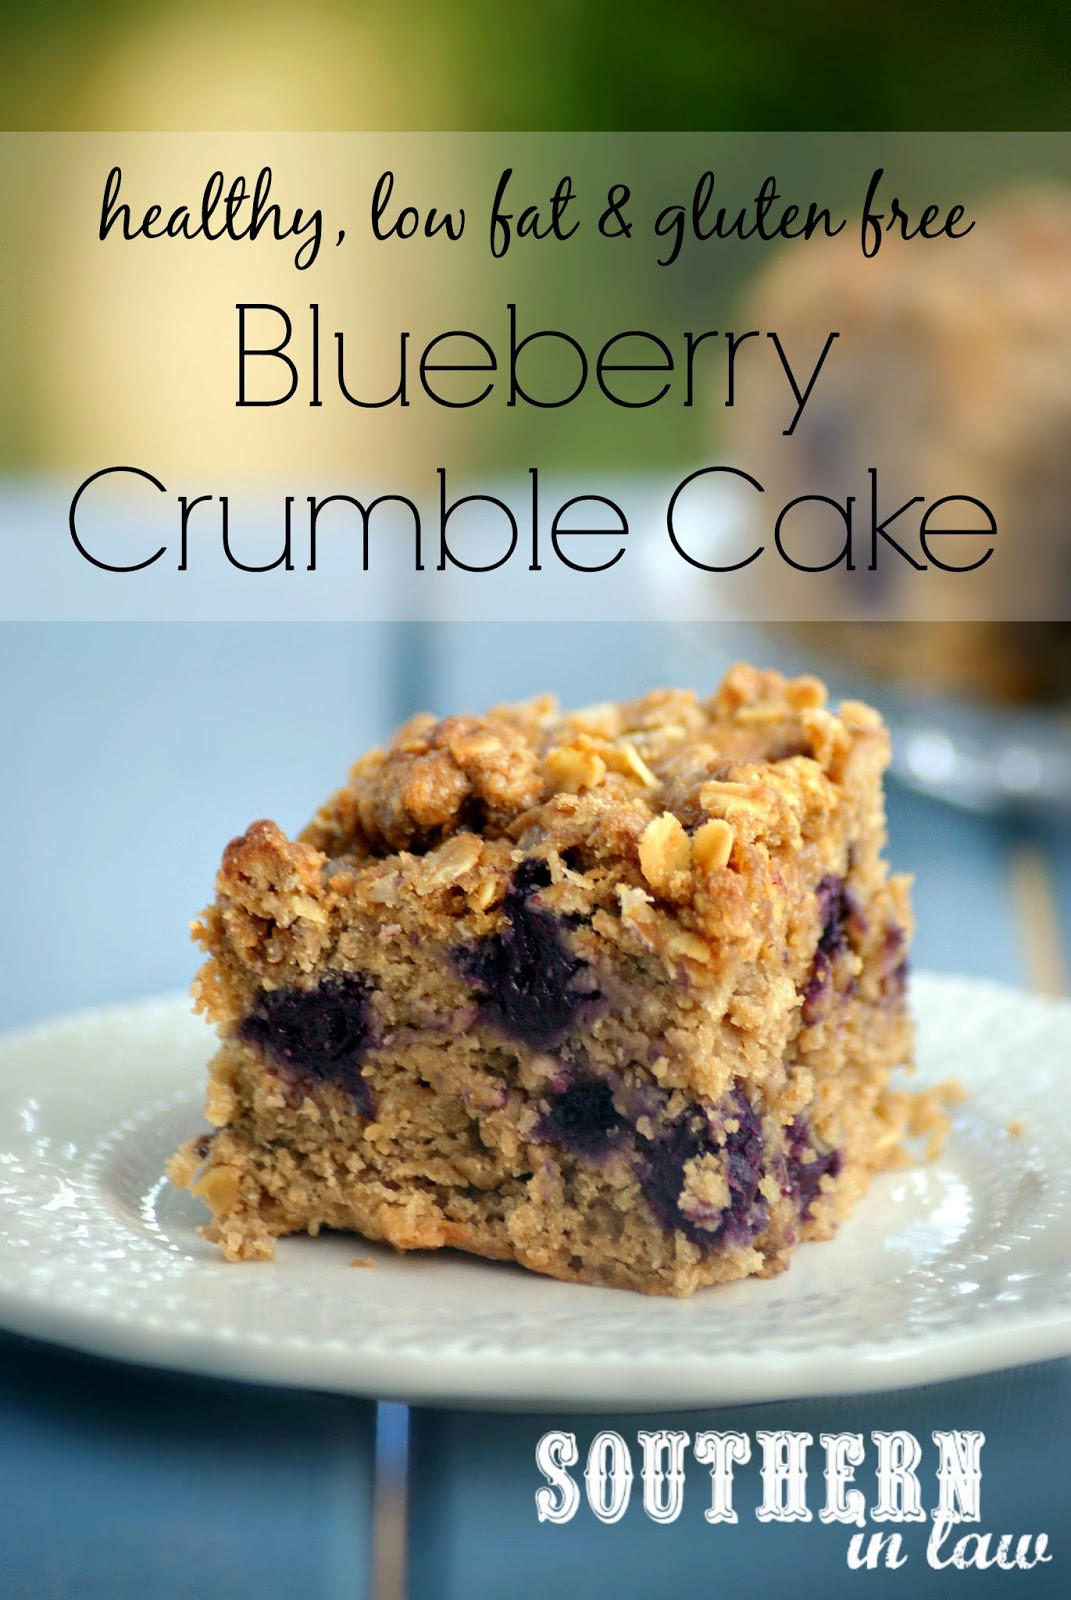 Low Fat Low Sugar Recipes  Southern In Law Recipe Healthy Blueberry Crumble Cake